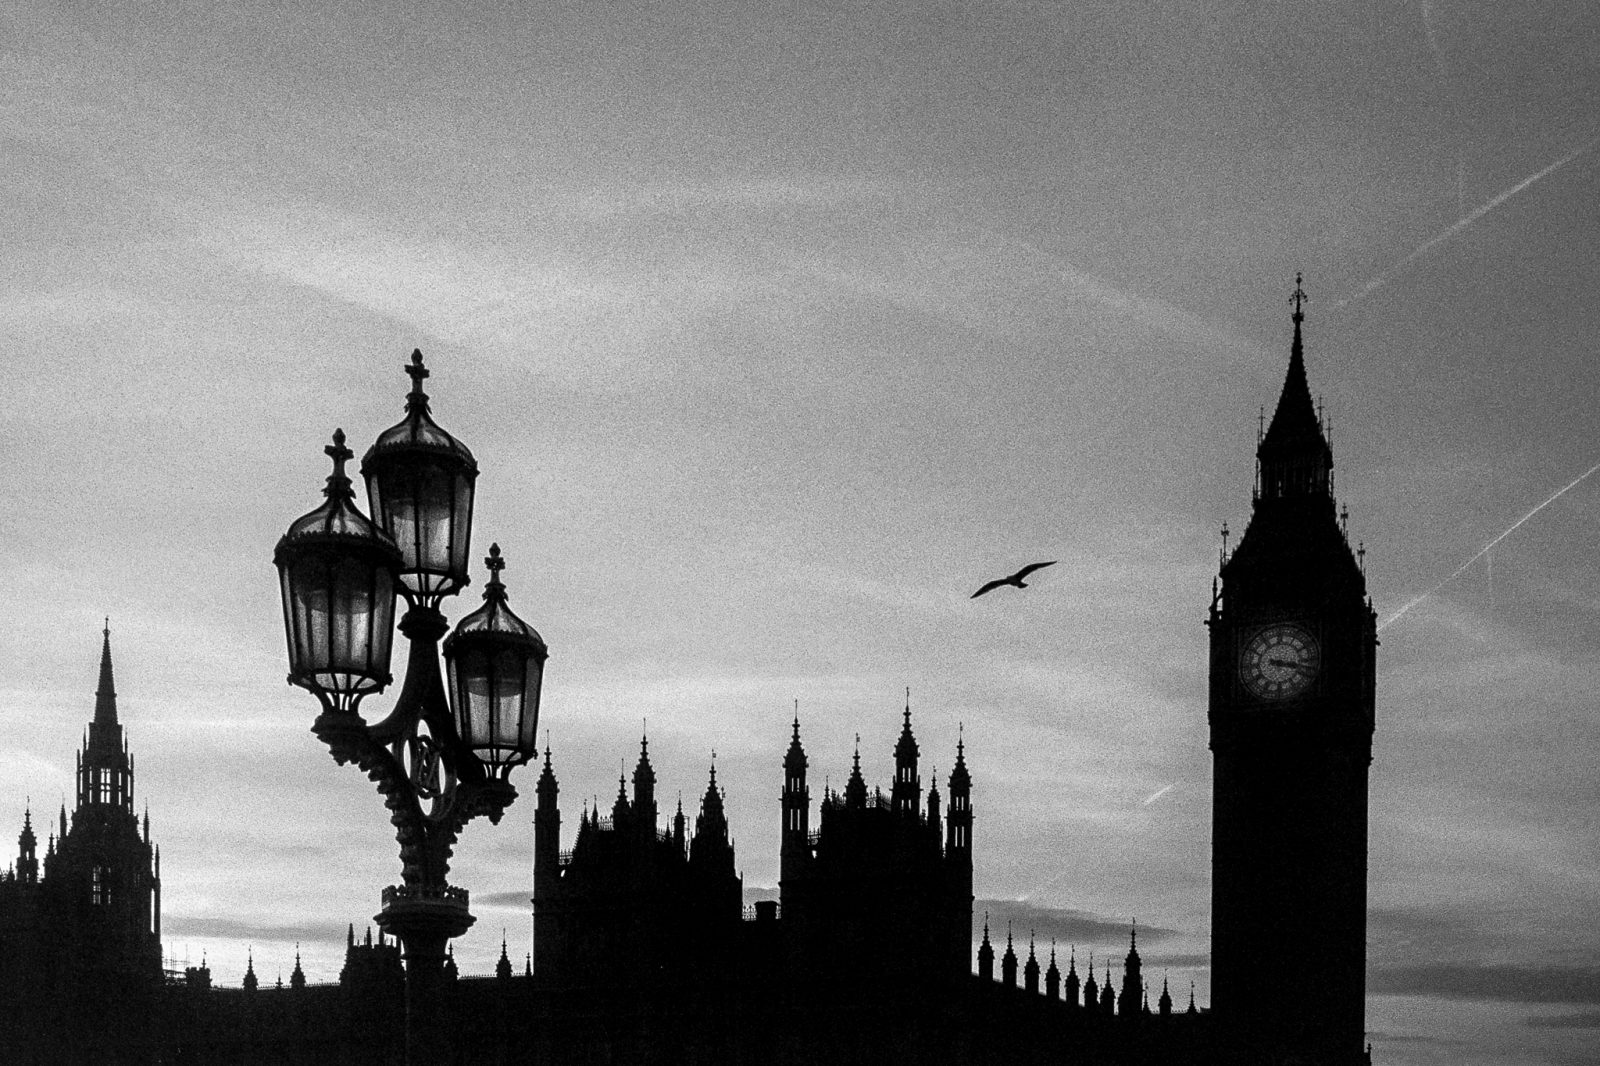 Soaring over Westminster